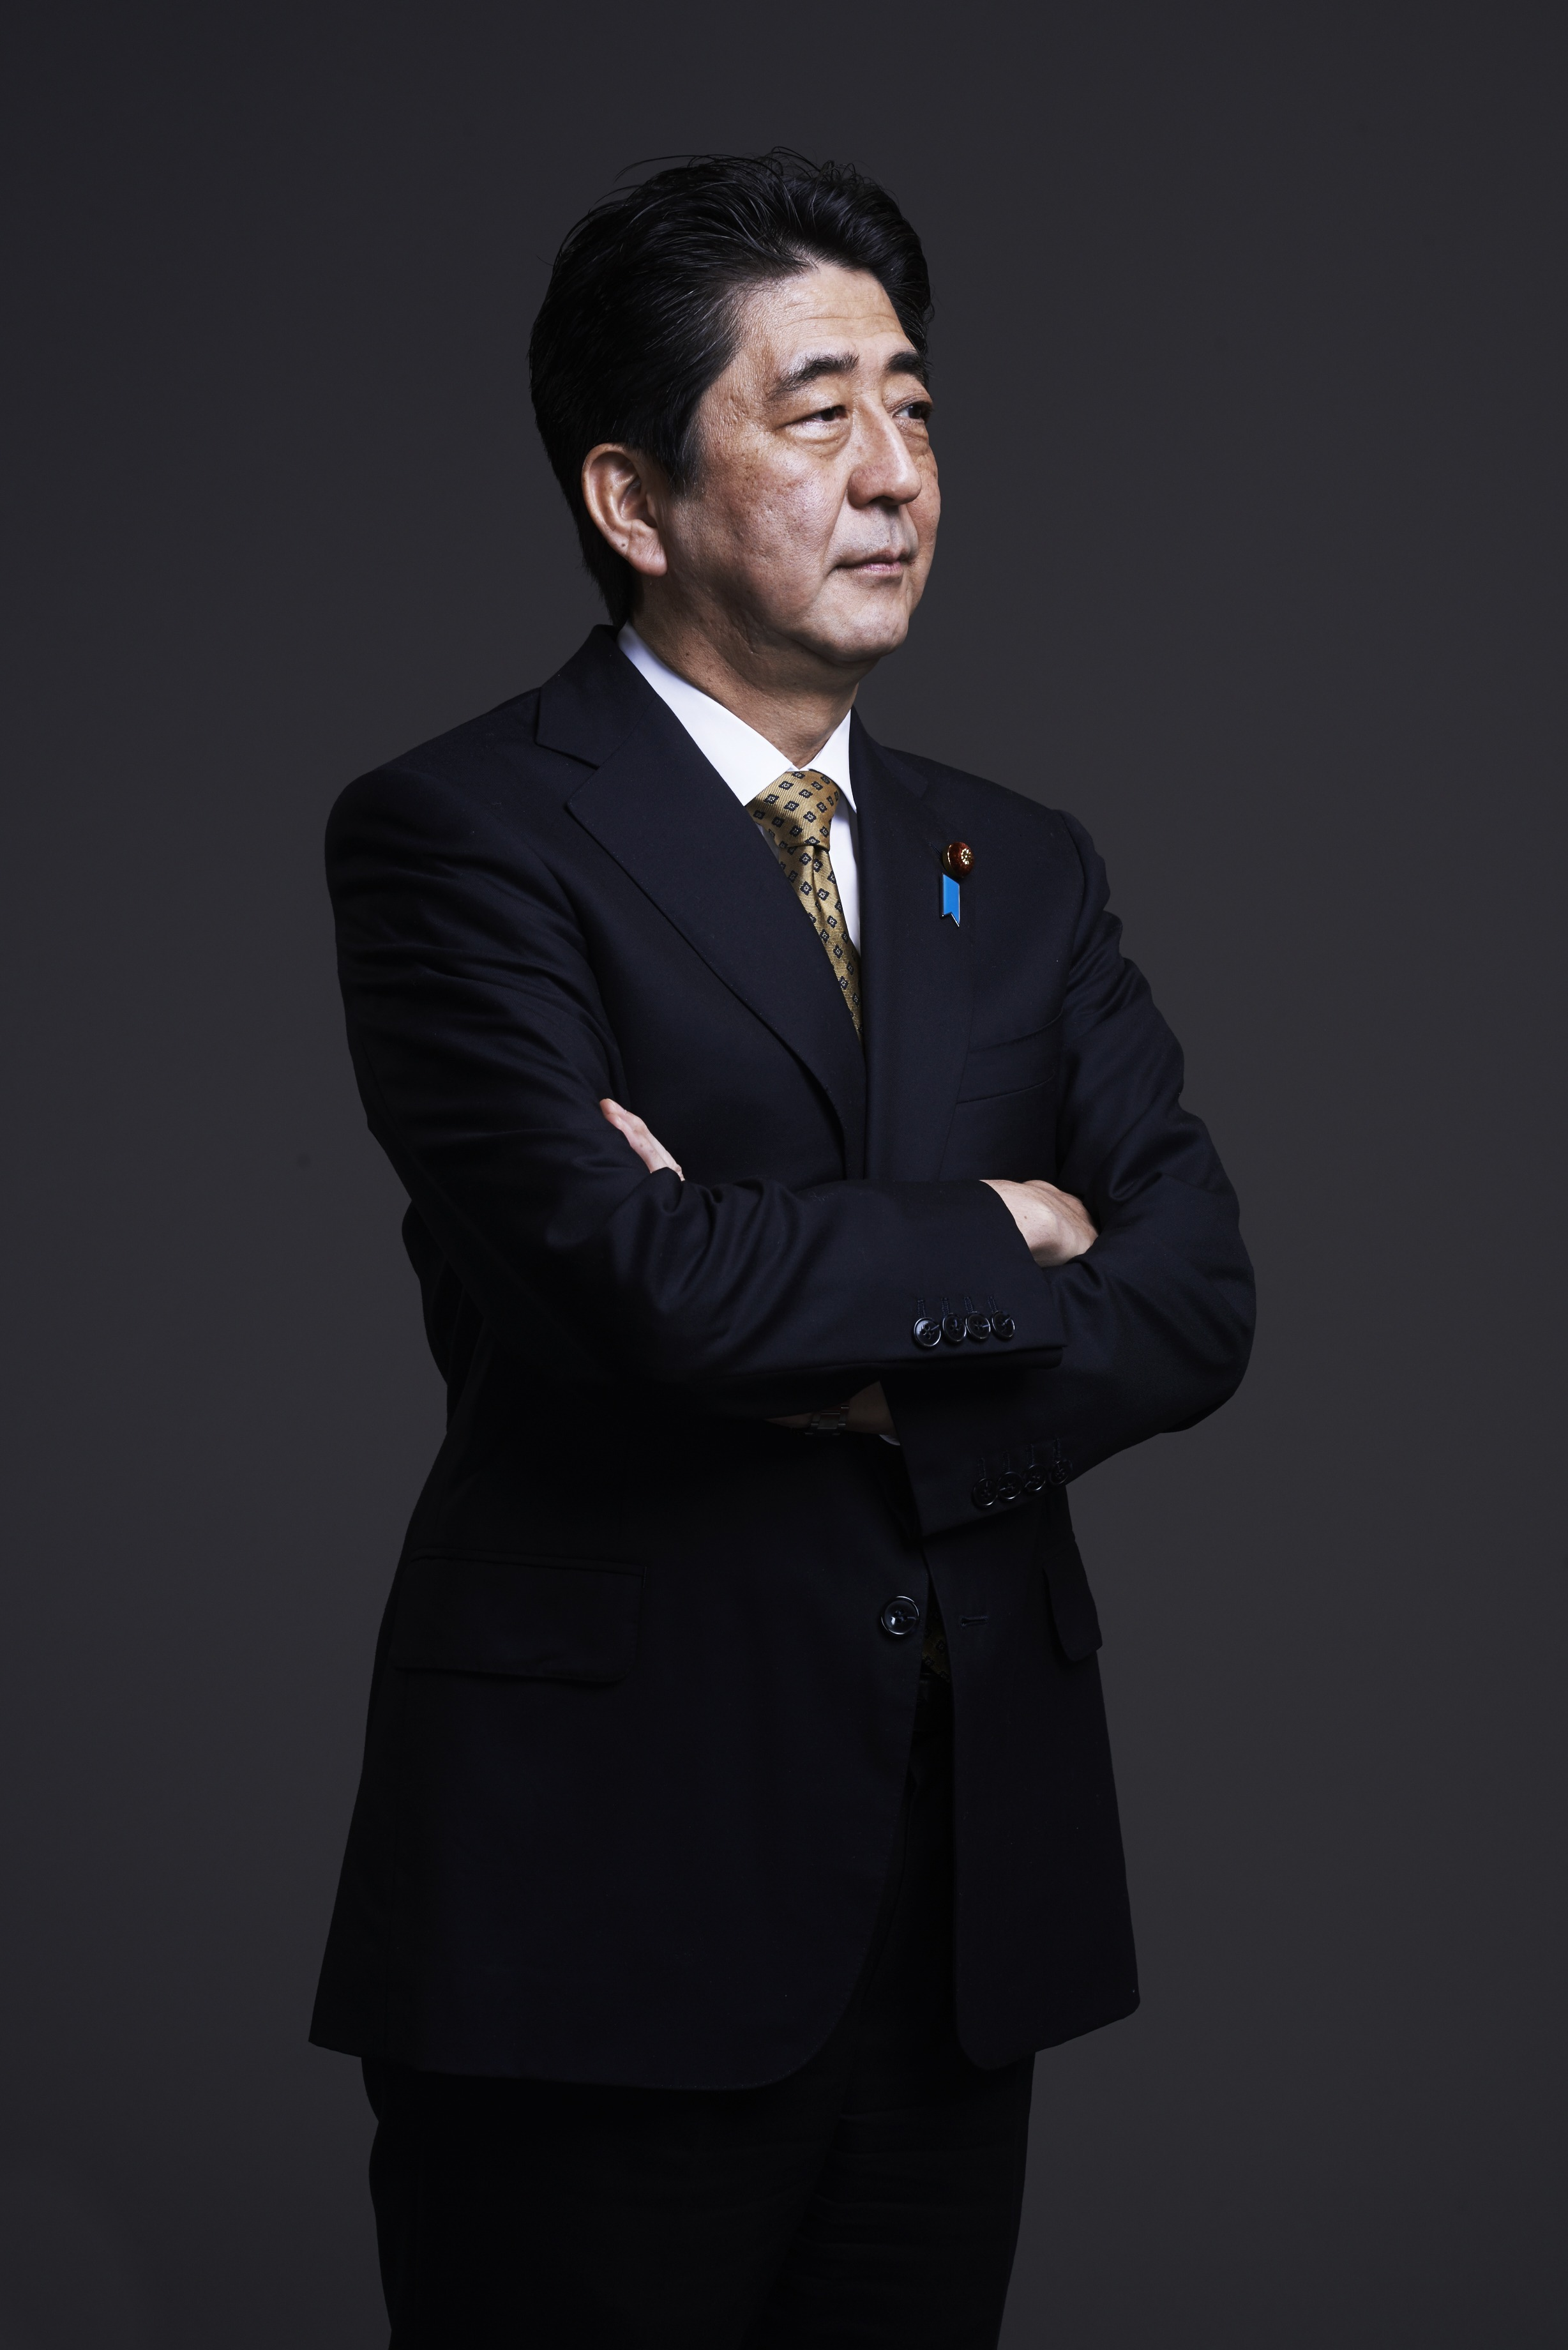 Japan's most powerful leader in Years, Shinzo Abe aims to reclaim his country's place on the world stage. That makes many Asians—including some Japanese—uncomfortable